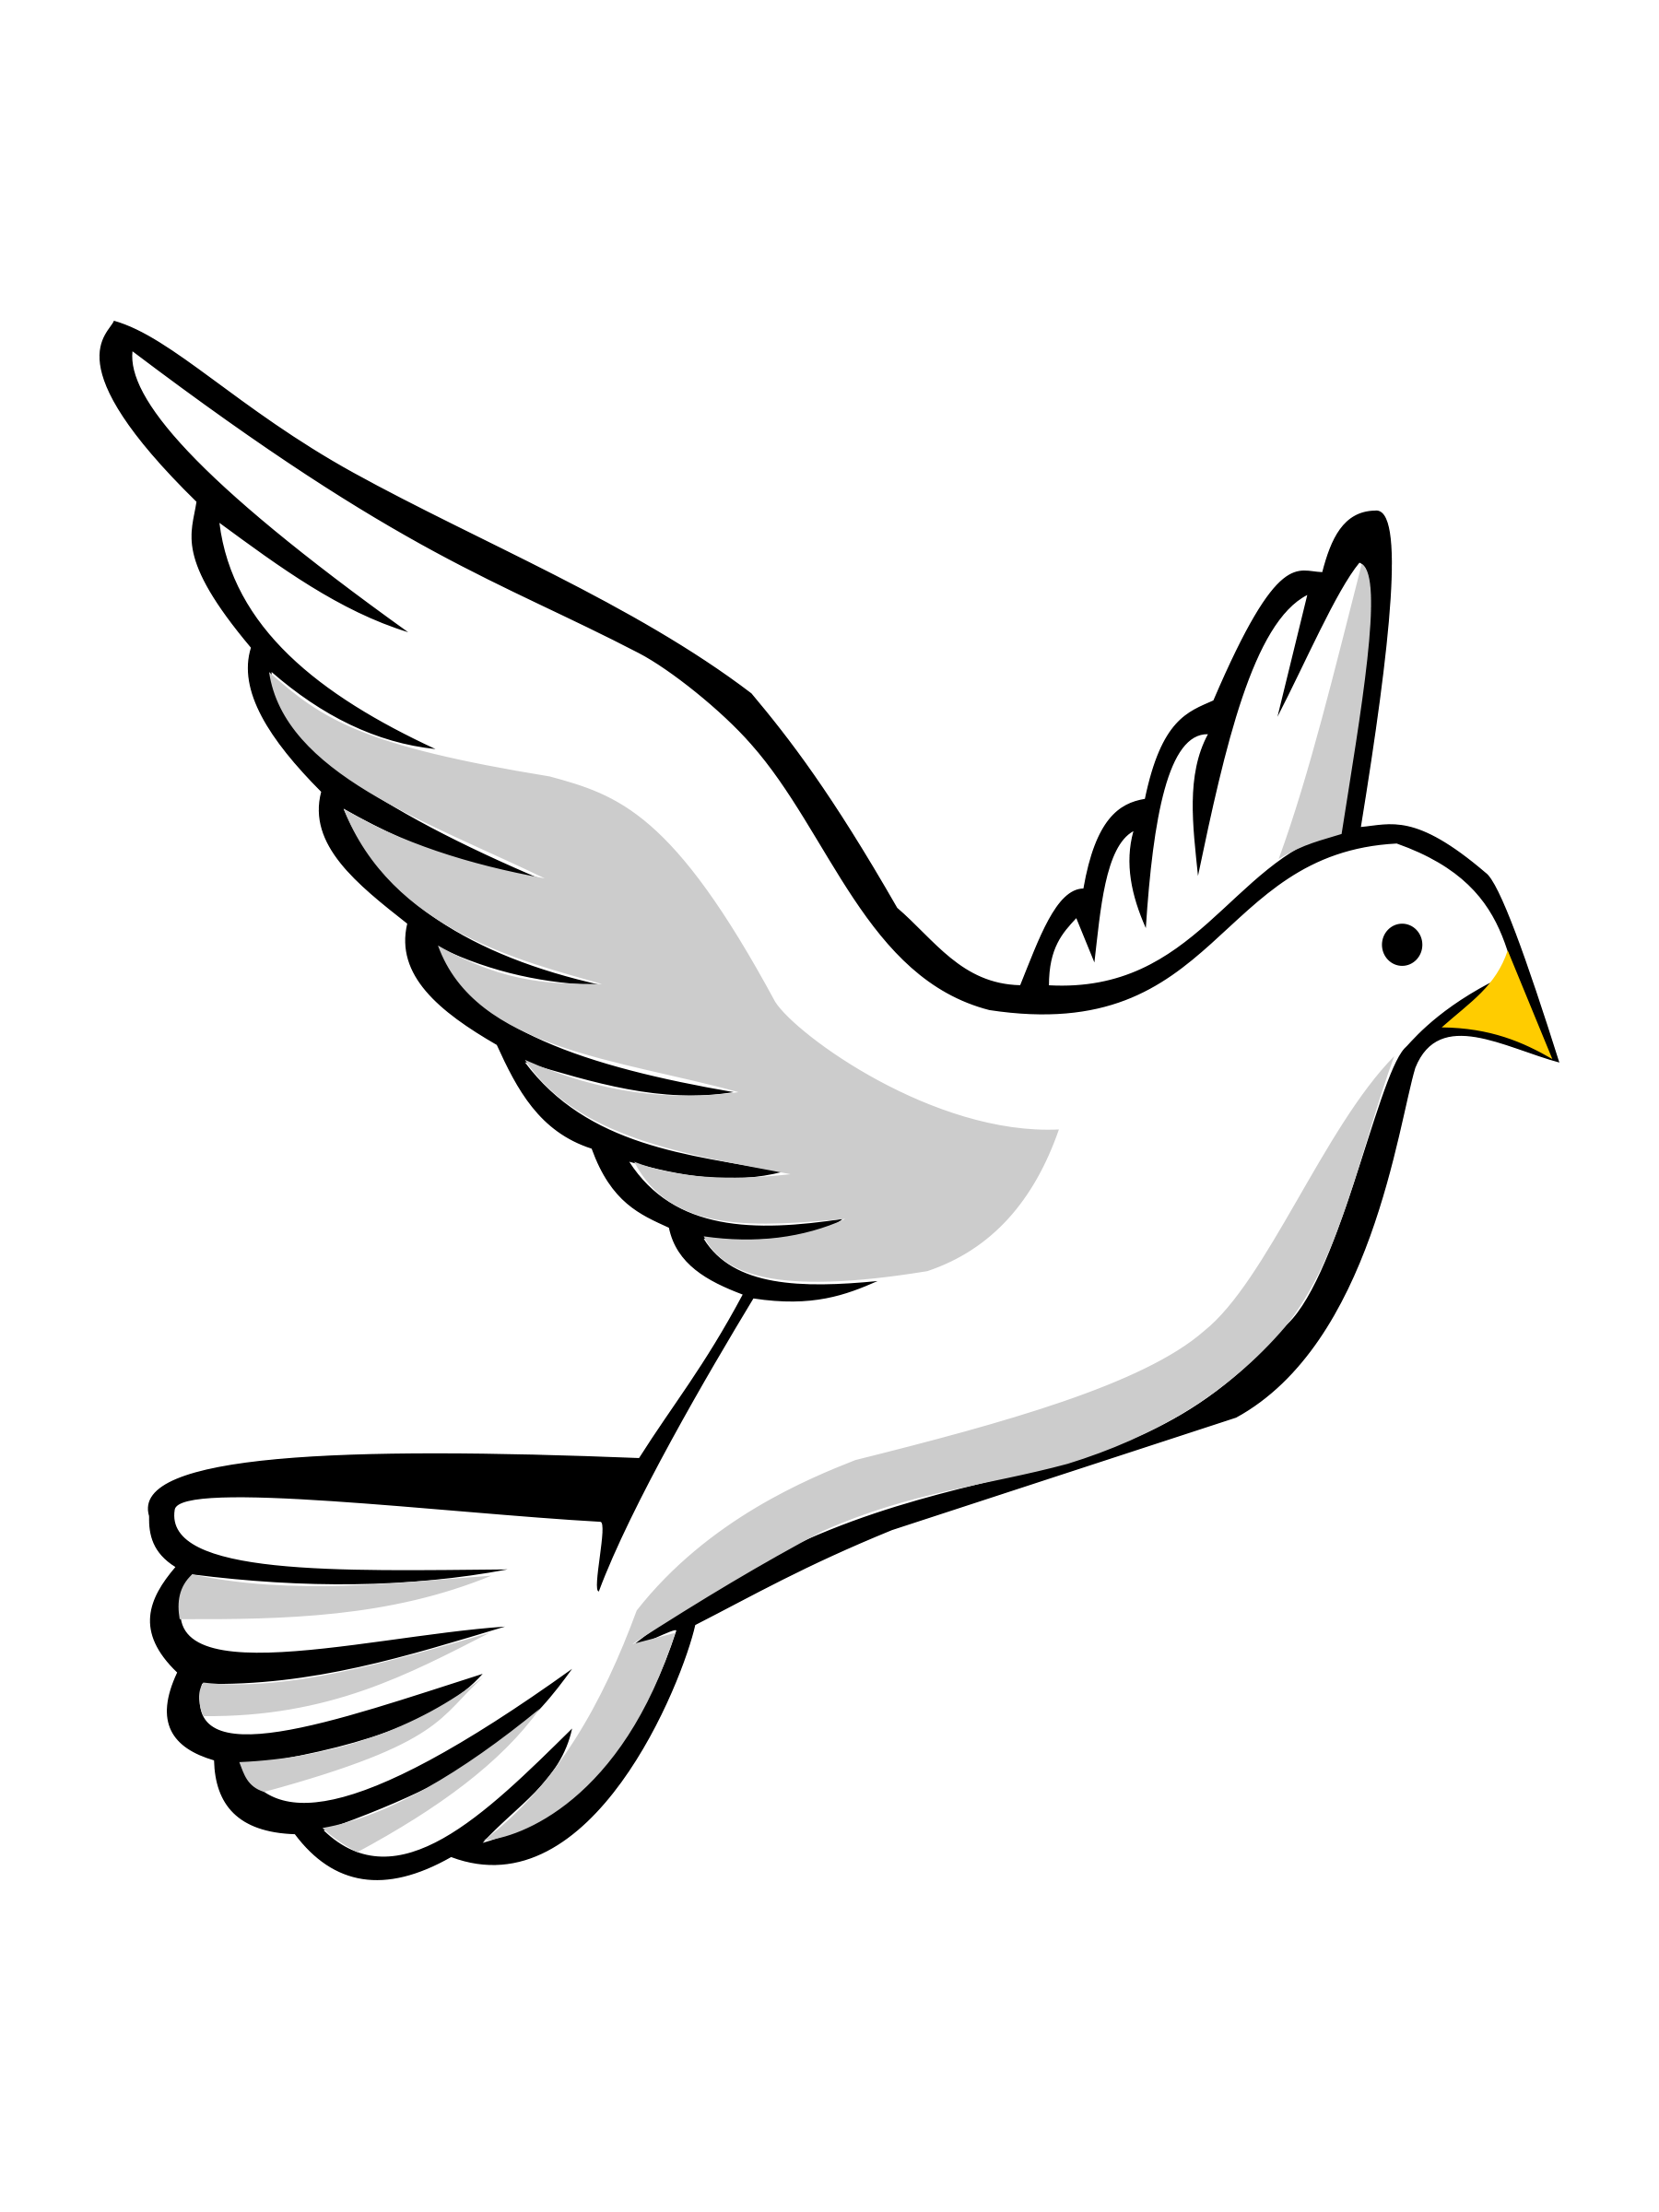 Png holy spirit transparent. Arts drawing bird picture library library